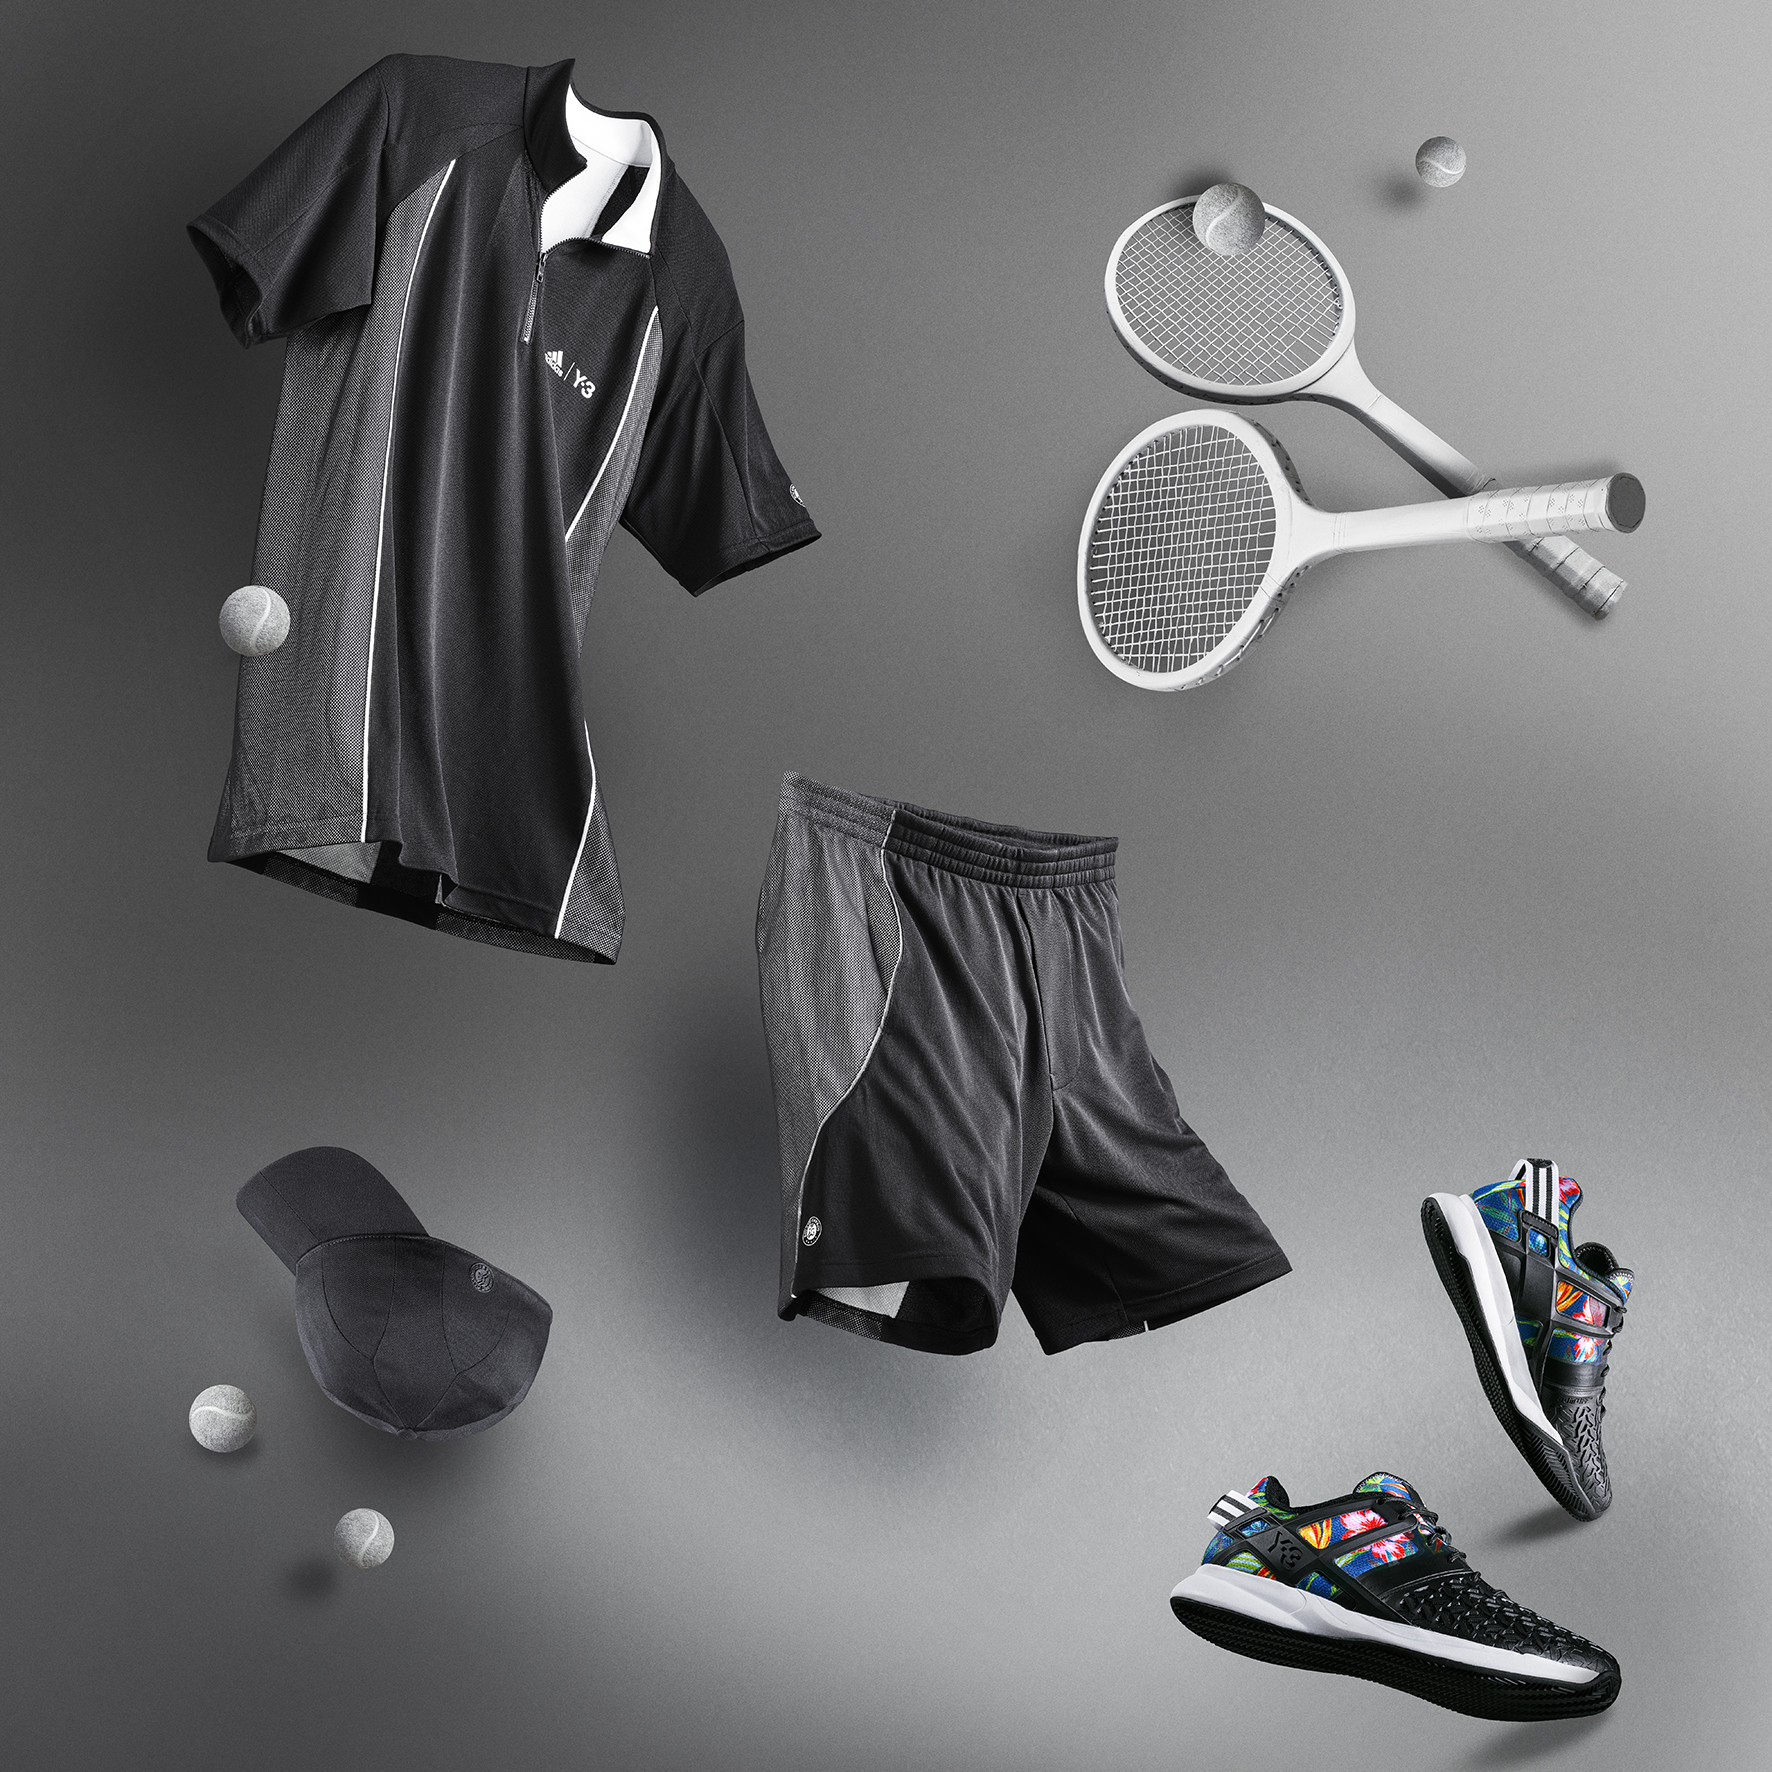 adidas y-3 rolland garros collection